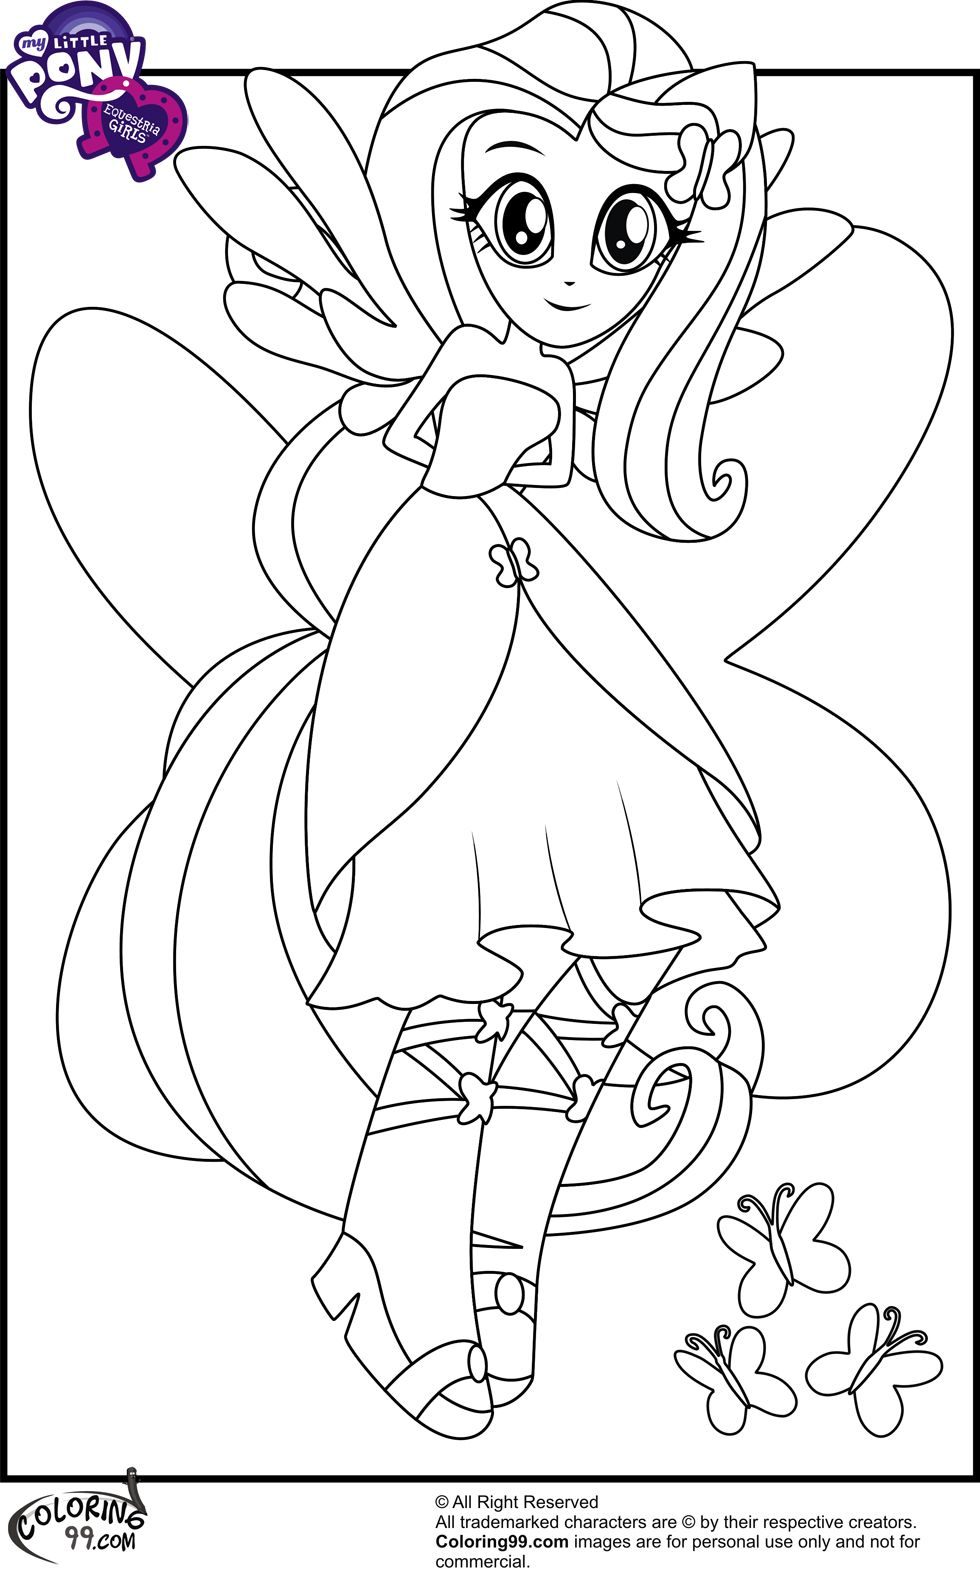 My little pony rainbow rocks coloring pages games - Coloring Pages On Pinterest Equestria Girls My Little Pony My Little Pony